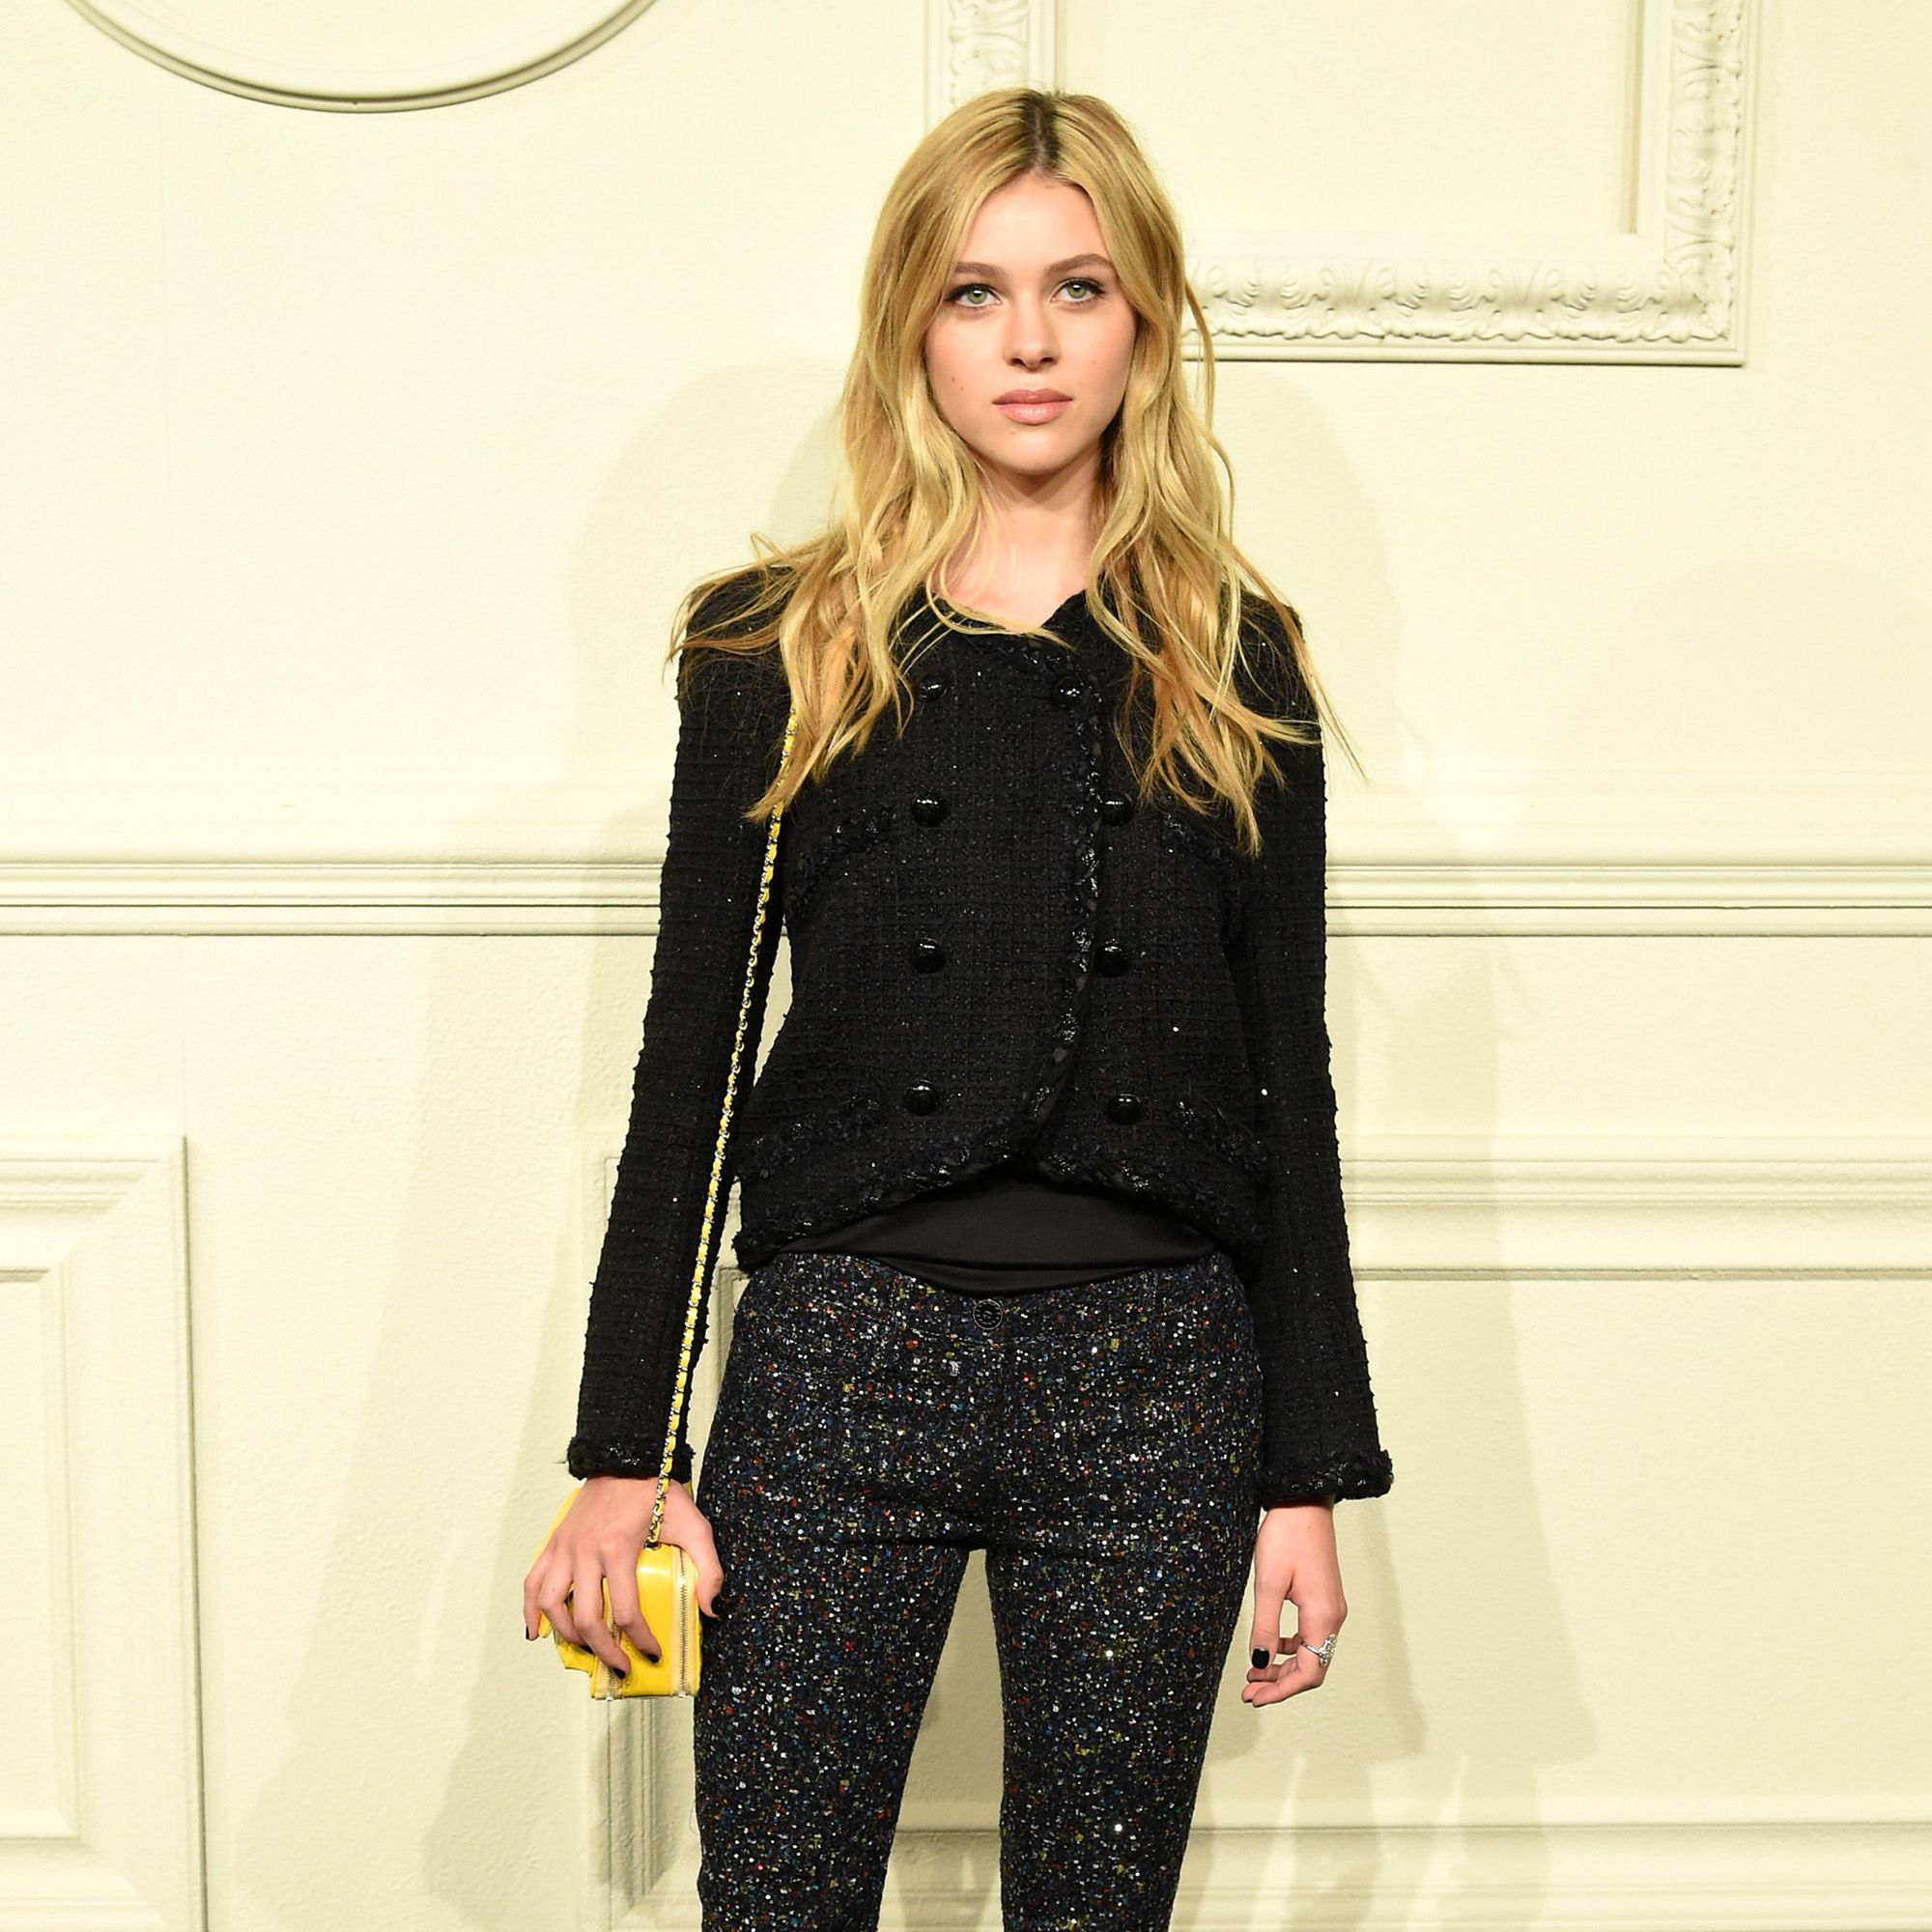 NEW YORK, NY - MARCH 31:  Nicola Peltz attends the CHANEL Paris-Salzburg 2014/15 Metiers d'Art Collection in New York City at the Park Avenue Armory on March 31, 2015 in New York City.  (Photo by Andrew H. Walker/WireImage)